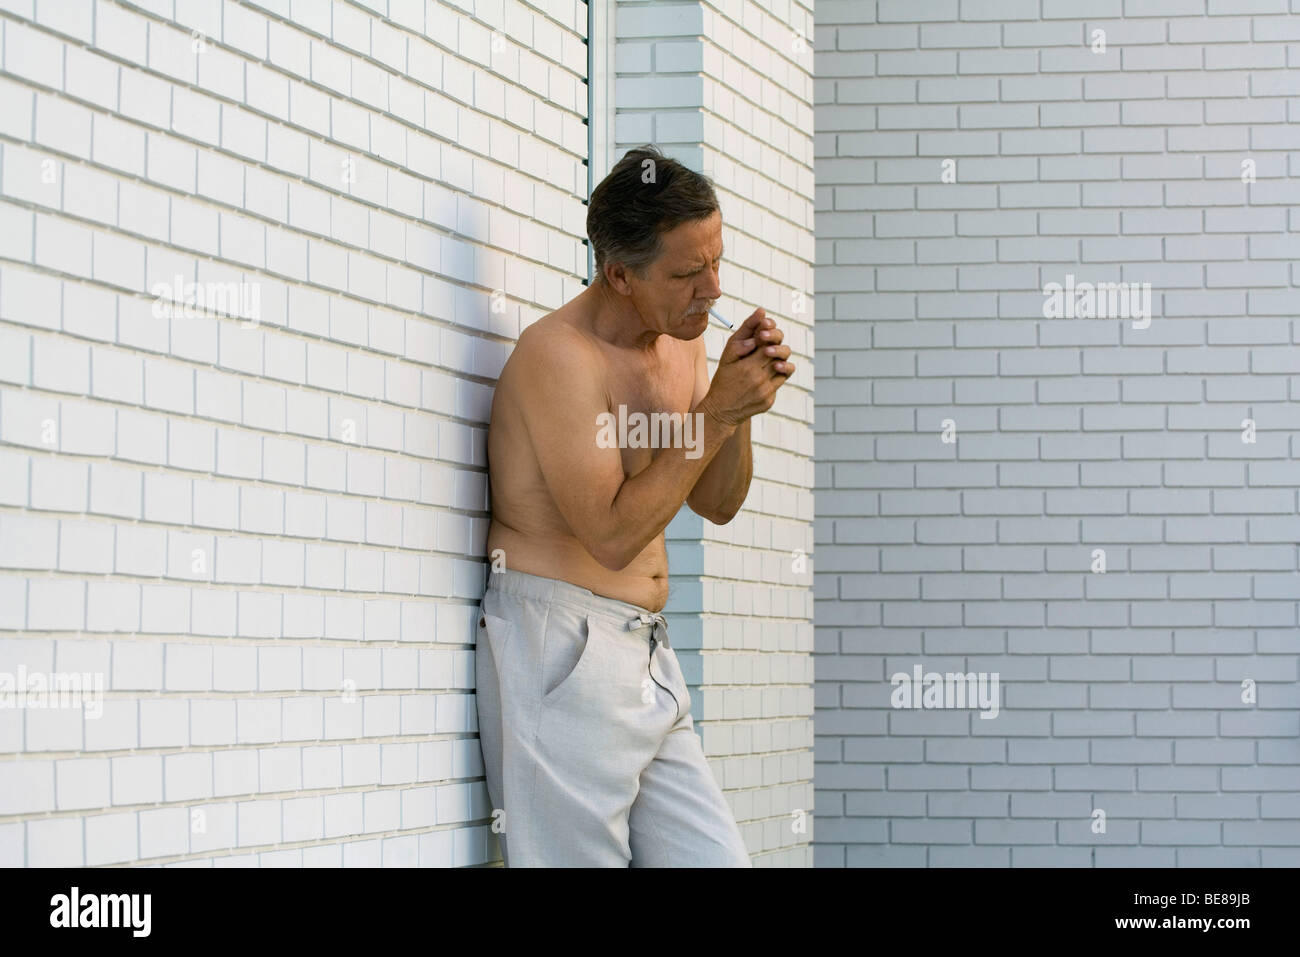 Bare-chested man leaning against wall lighting cigarette - Stock Image